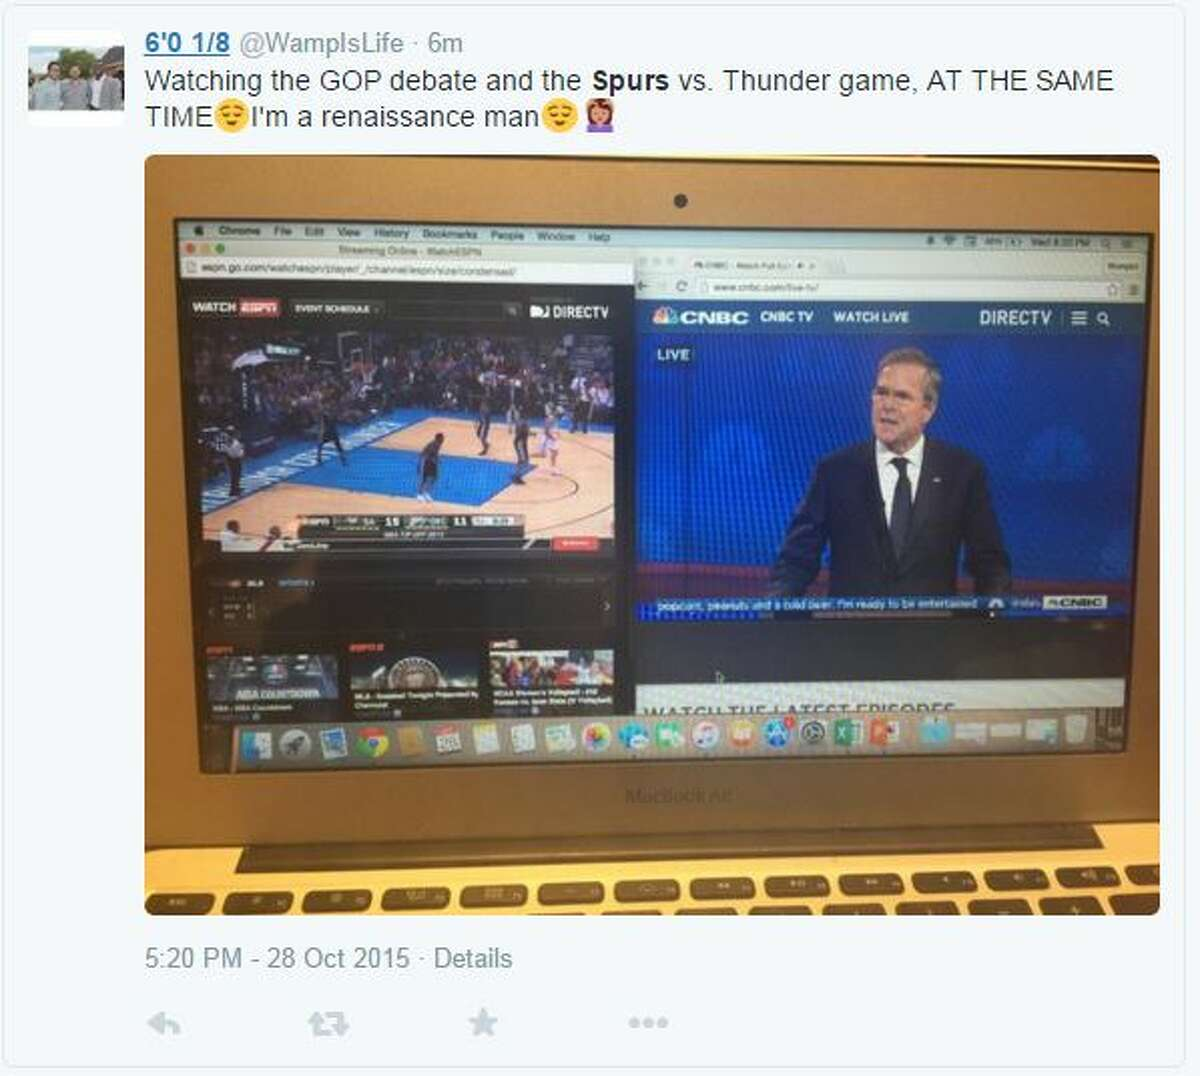 Watching the GOP debate and the Spurs vs. Thunder game, AT THE SAME TIME. I'm a renaissance man.